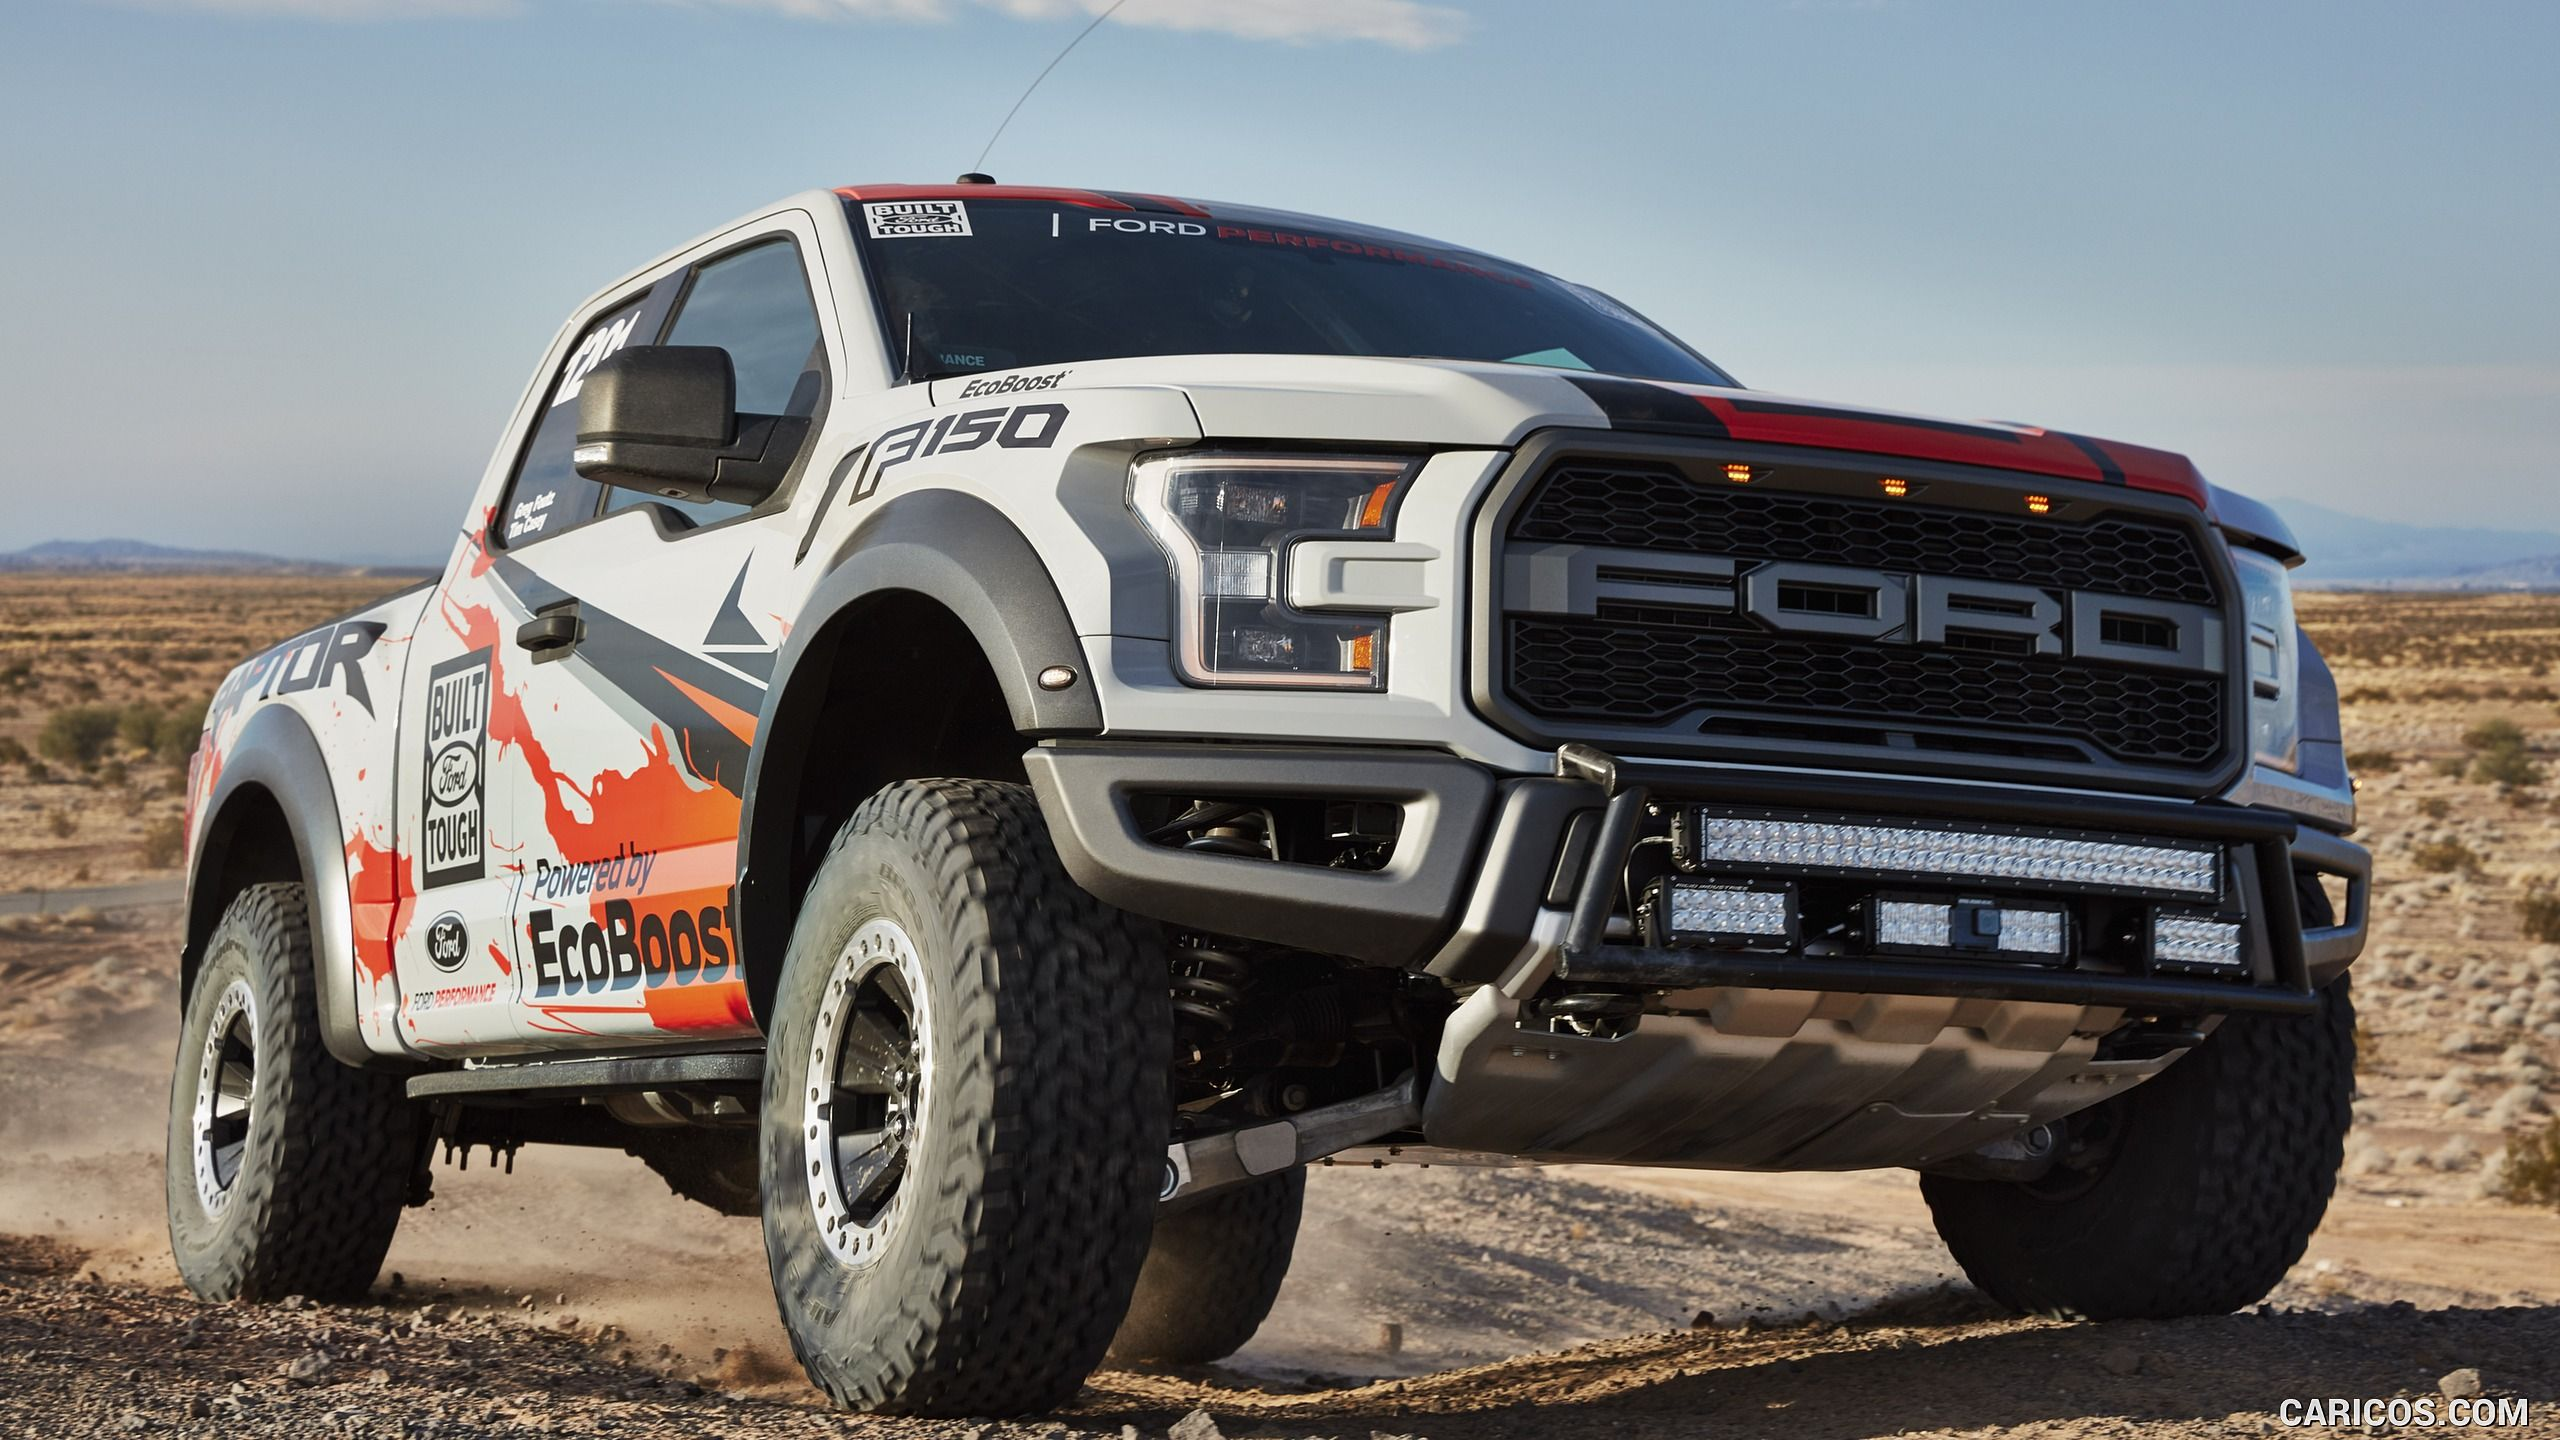 Ram 2500 For Sale >> 2017 Raptor Race Truck http://www.tuttleclickford.com ...